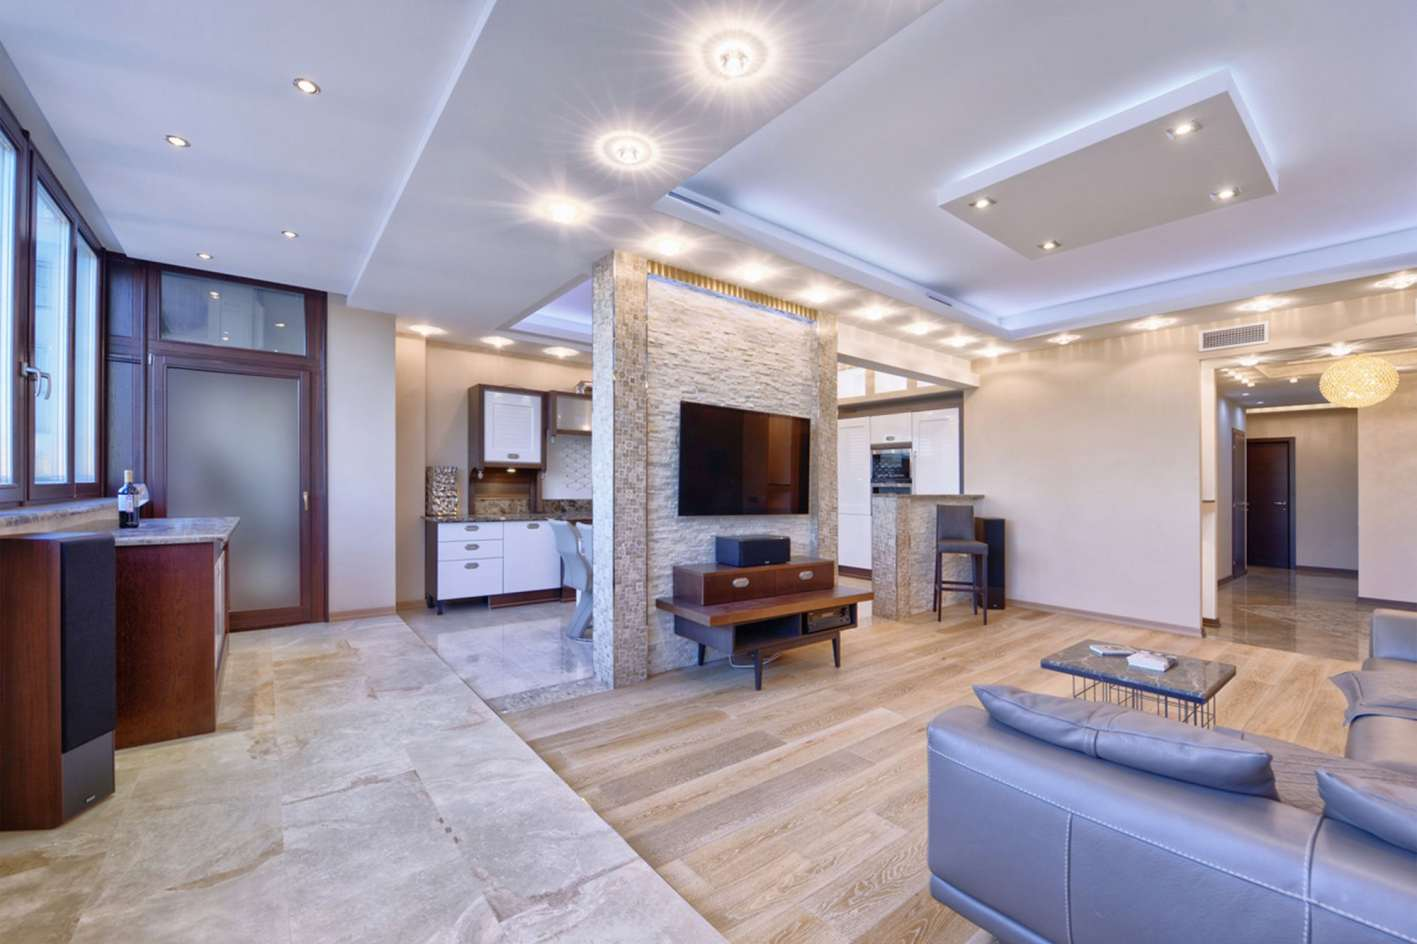 New style interiors offers outstanding interior design consulting services in dubai